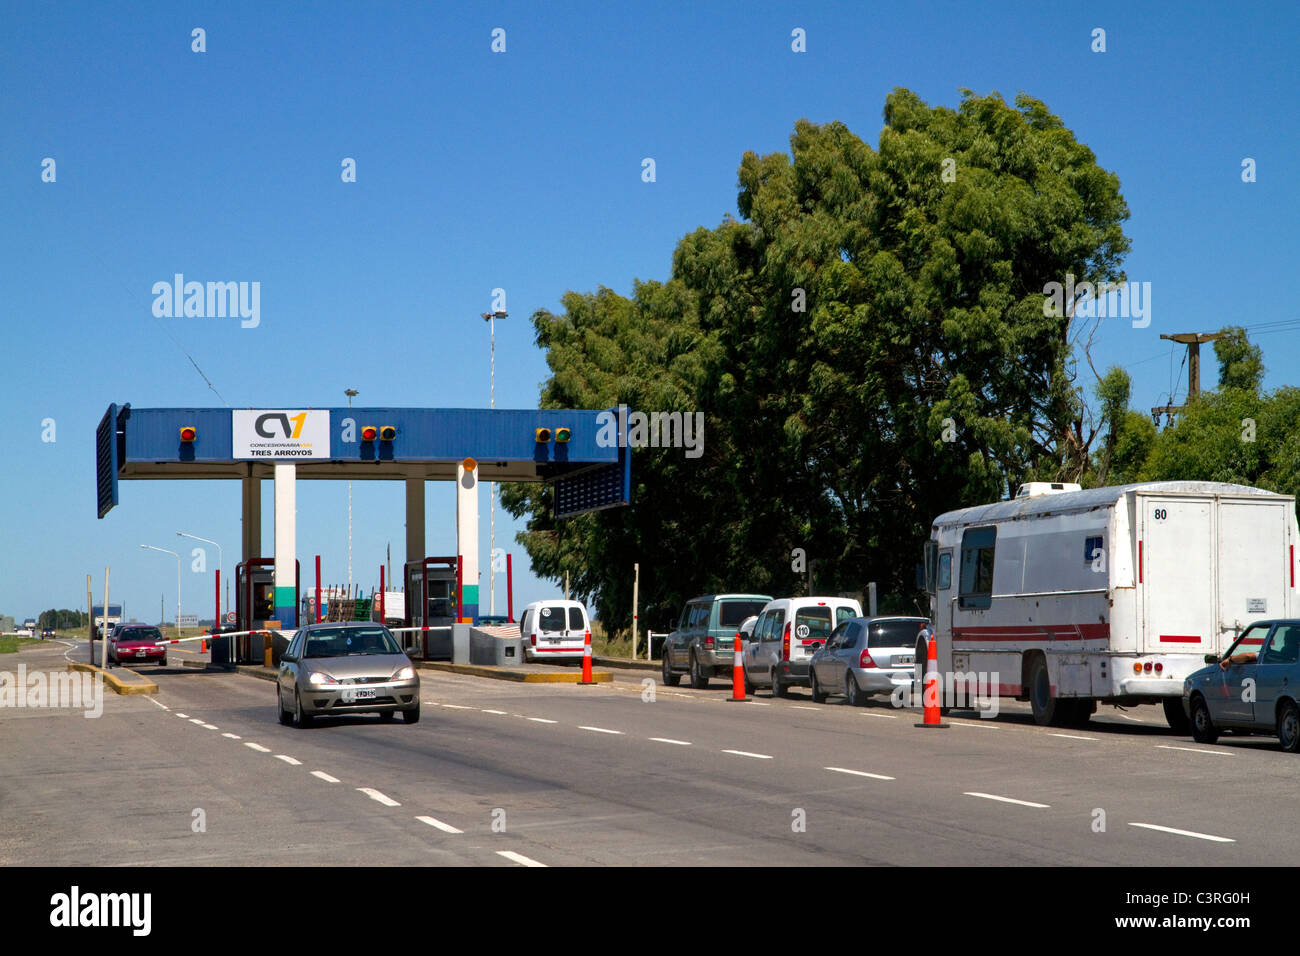 Tolls being collected along National Route 3 in Buenos Aires province, Argentina. - Stock Image